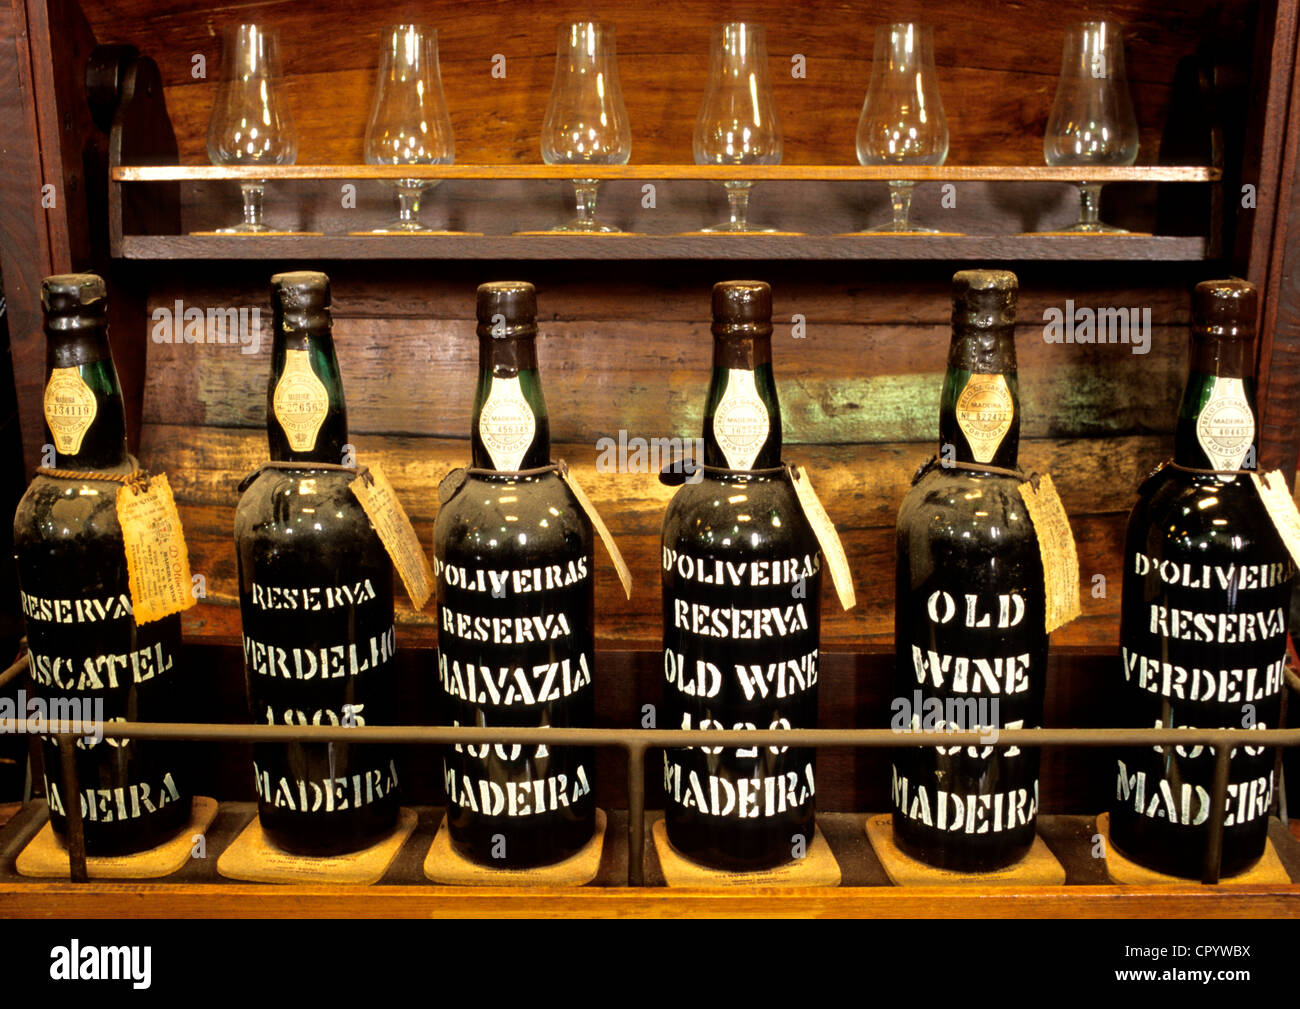 Portugal, Madeira Island, Funchal, wine of Madeira Island in the cellar of Oliveira - Stock Image